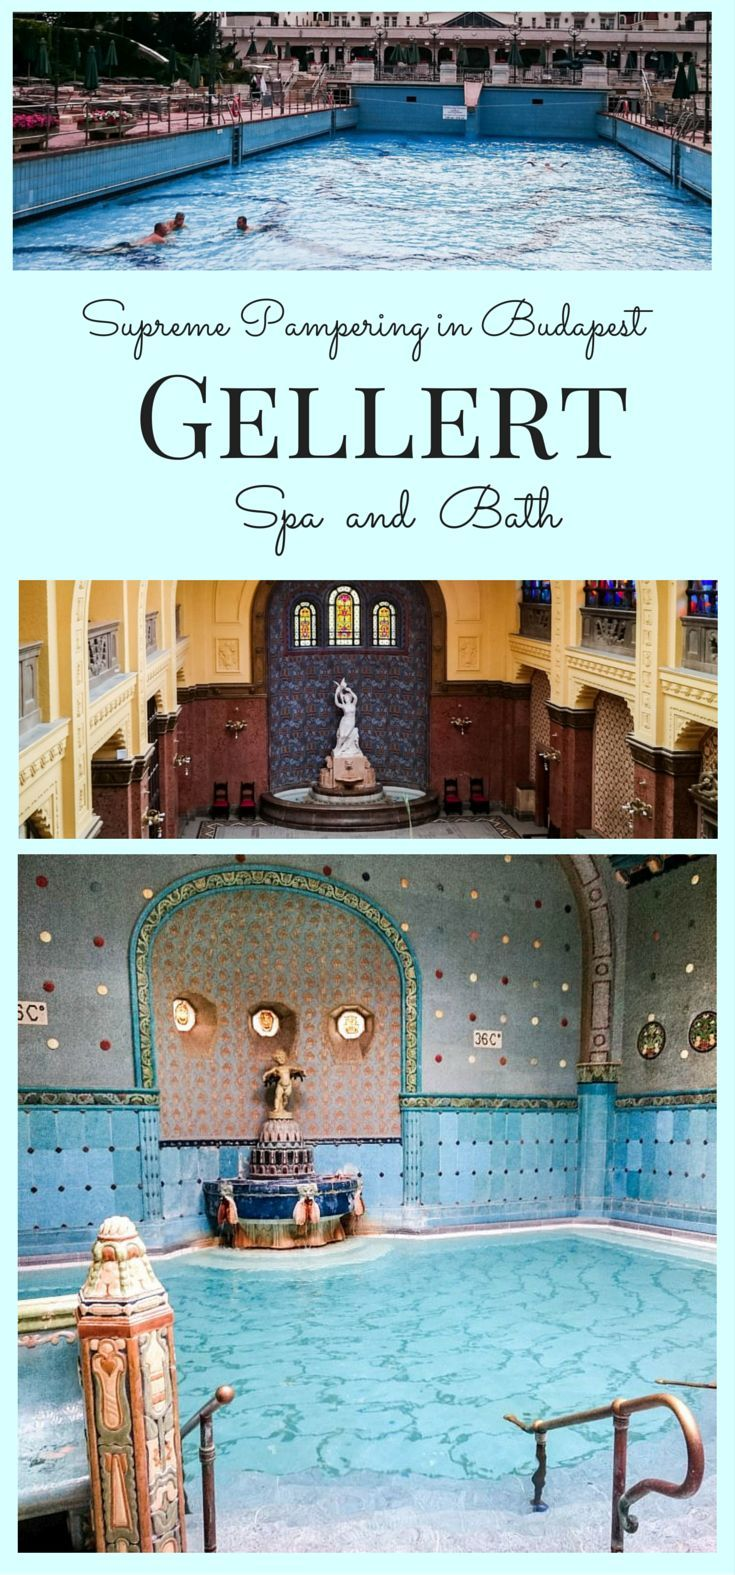 Supreme Pampering in Budapest Gellert Spa and BathSupreme Pampering in Budapest Gellert Spa and Bath